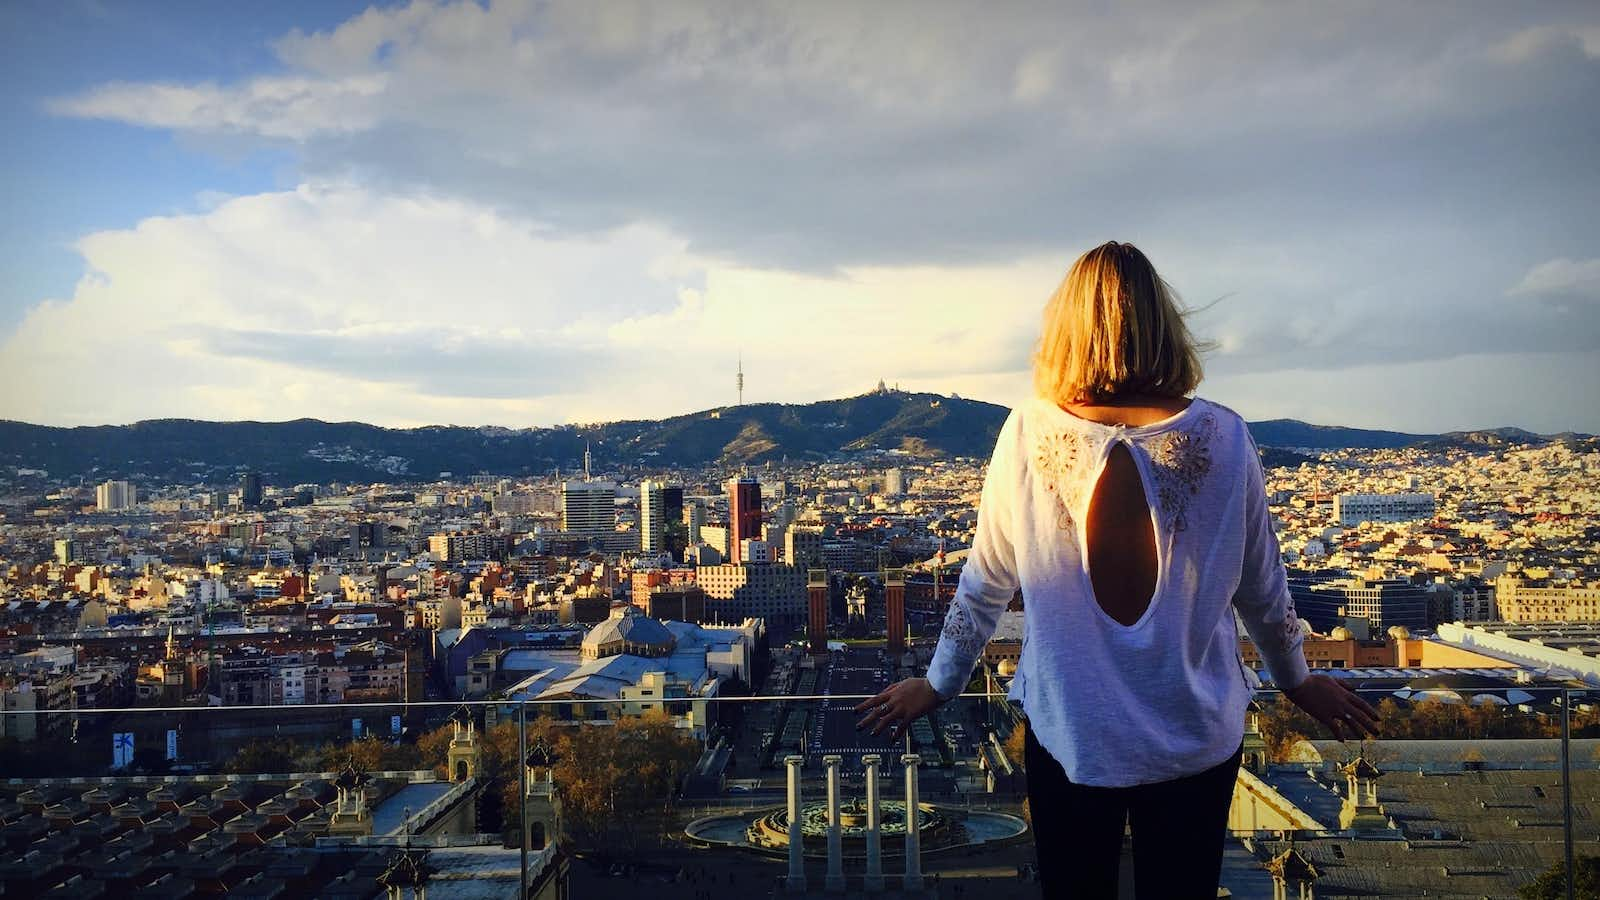 Looking out over the city of Barcelona